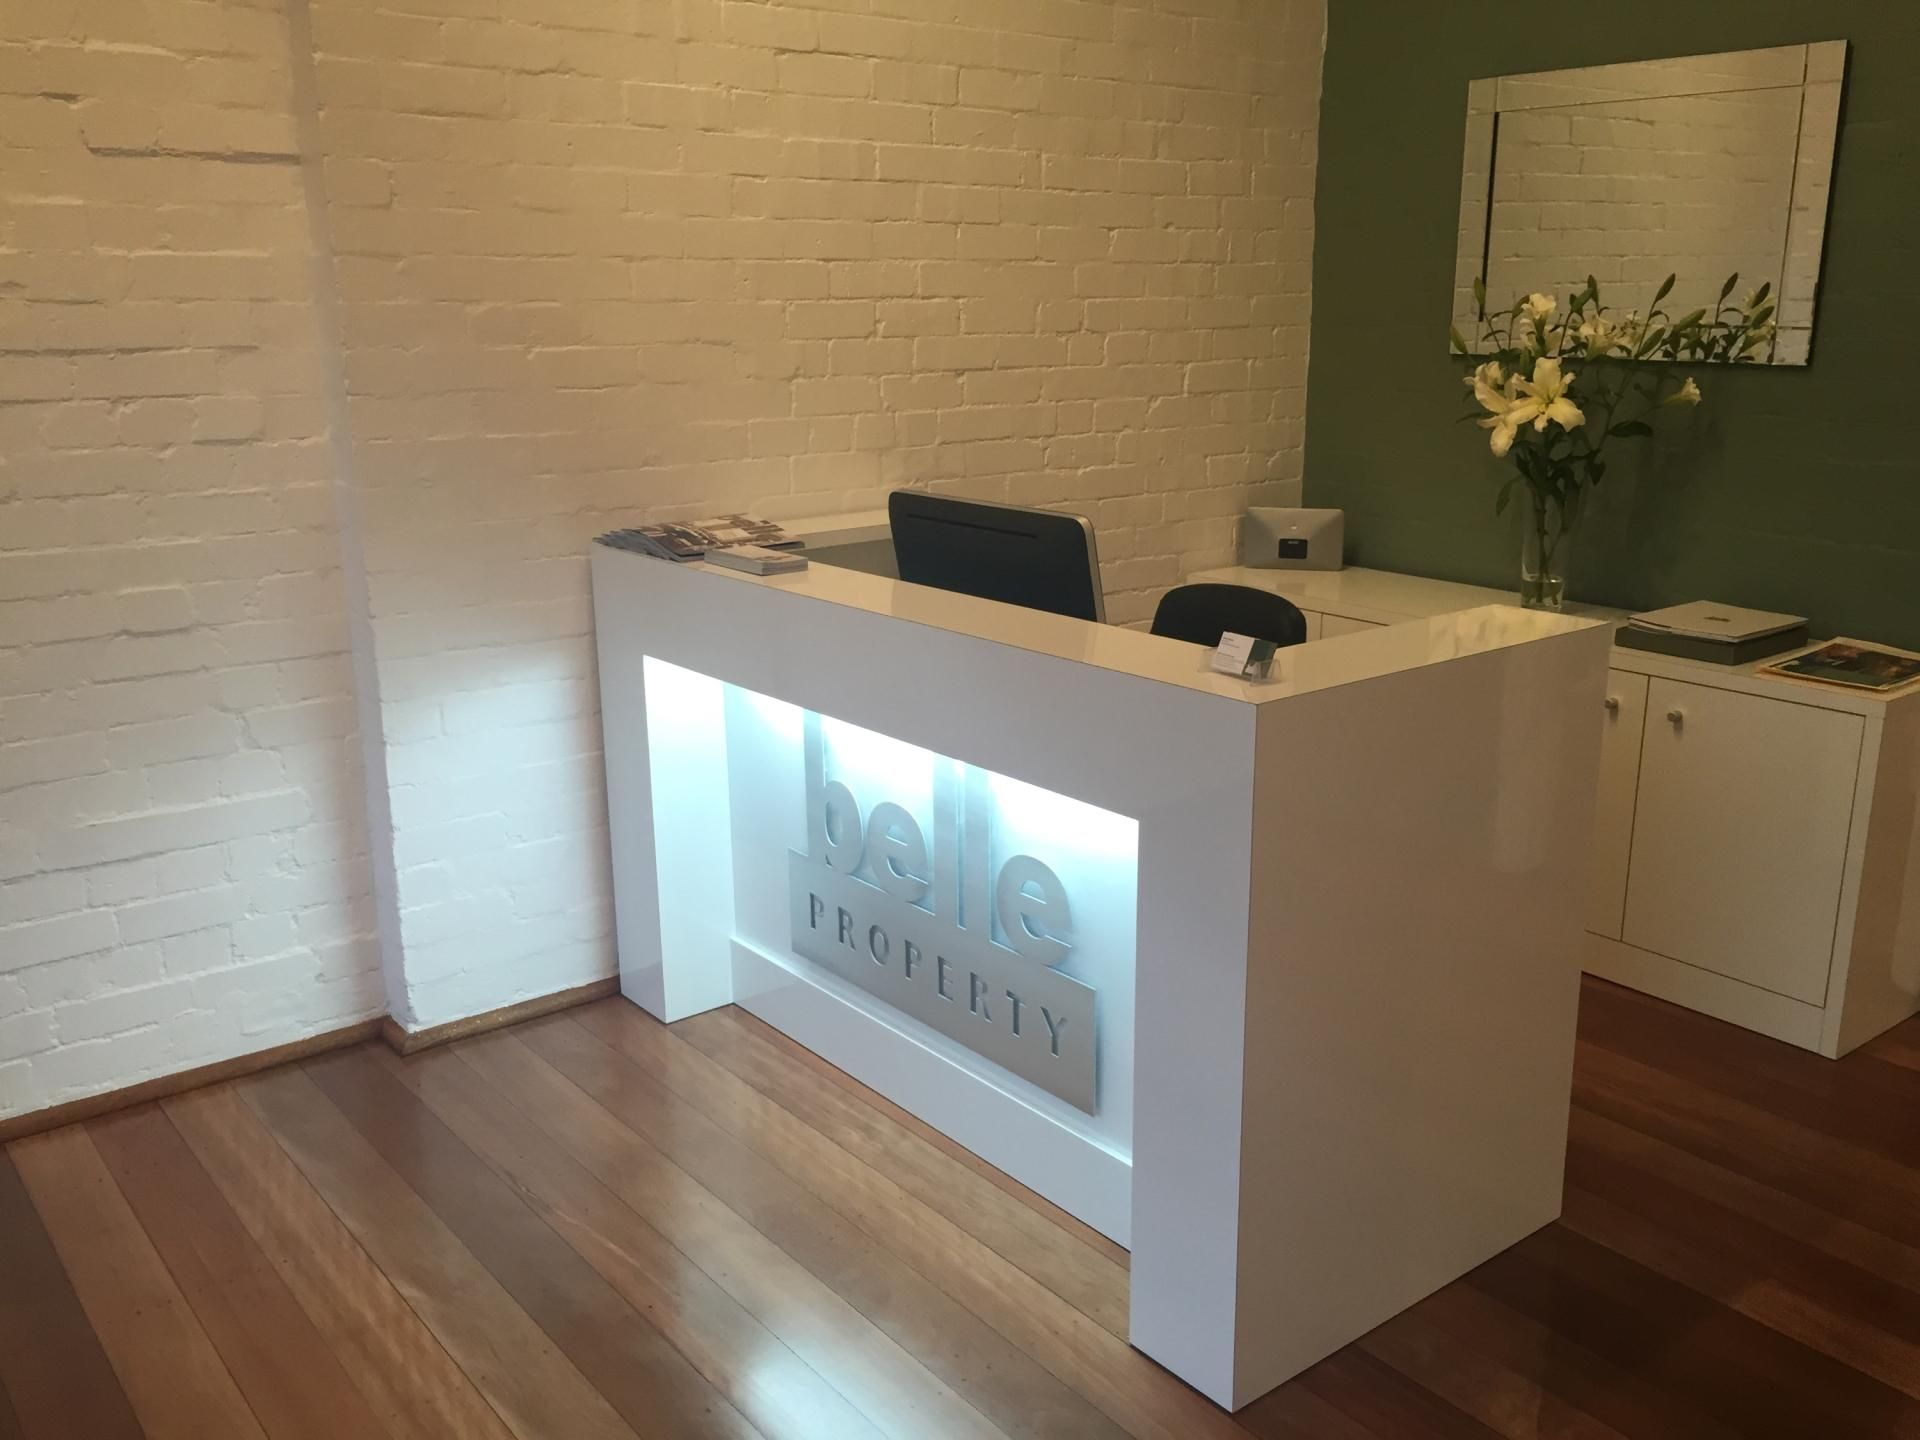 White Gloss Finish With Light And Signage Moveis De Madeira